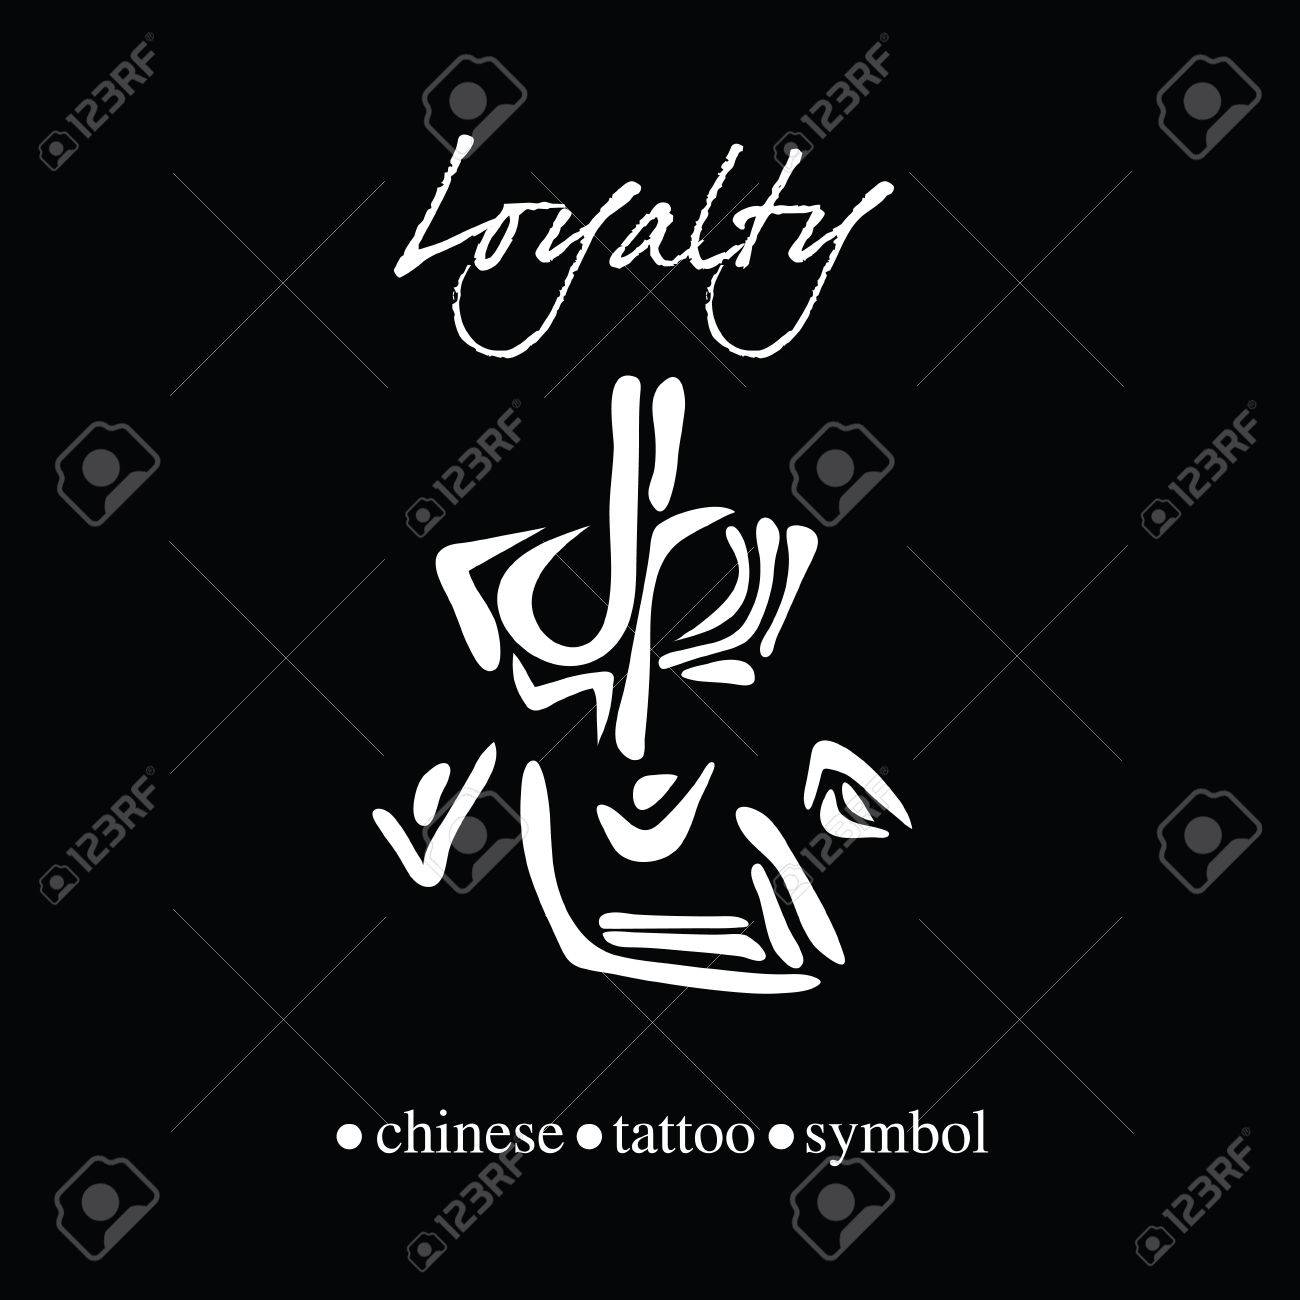 Chinese Character Calligraphy For Loyalty Royalty Free Cliparts